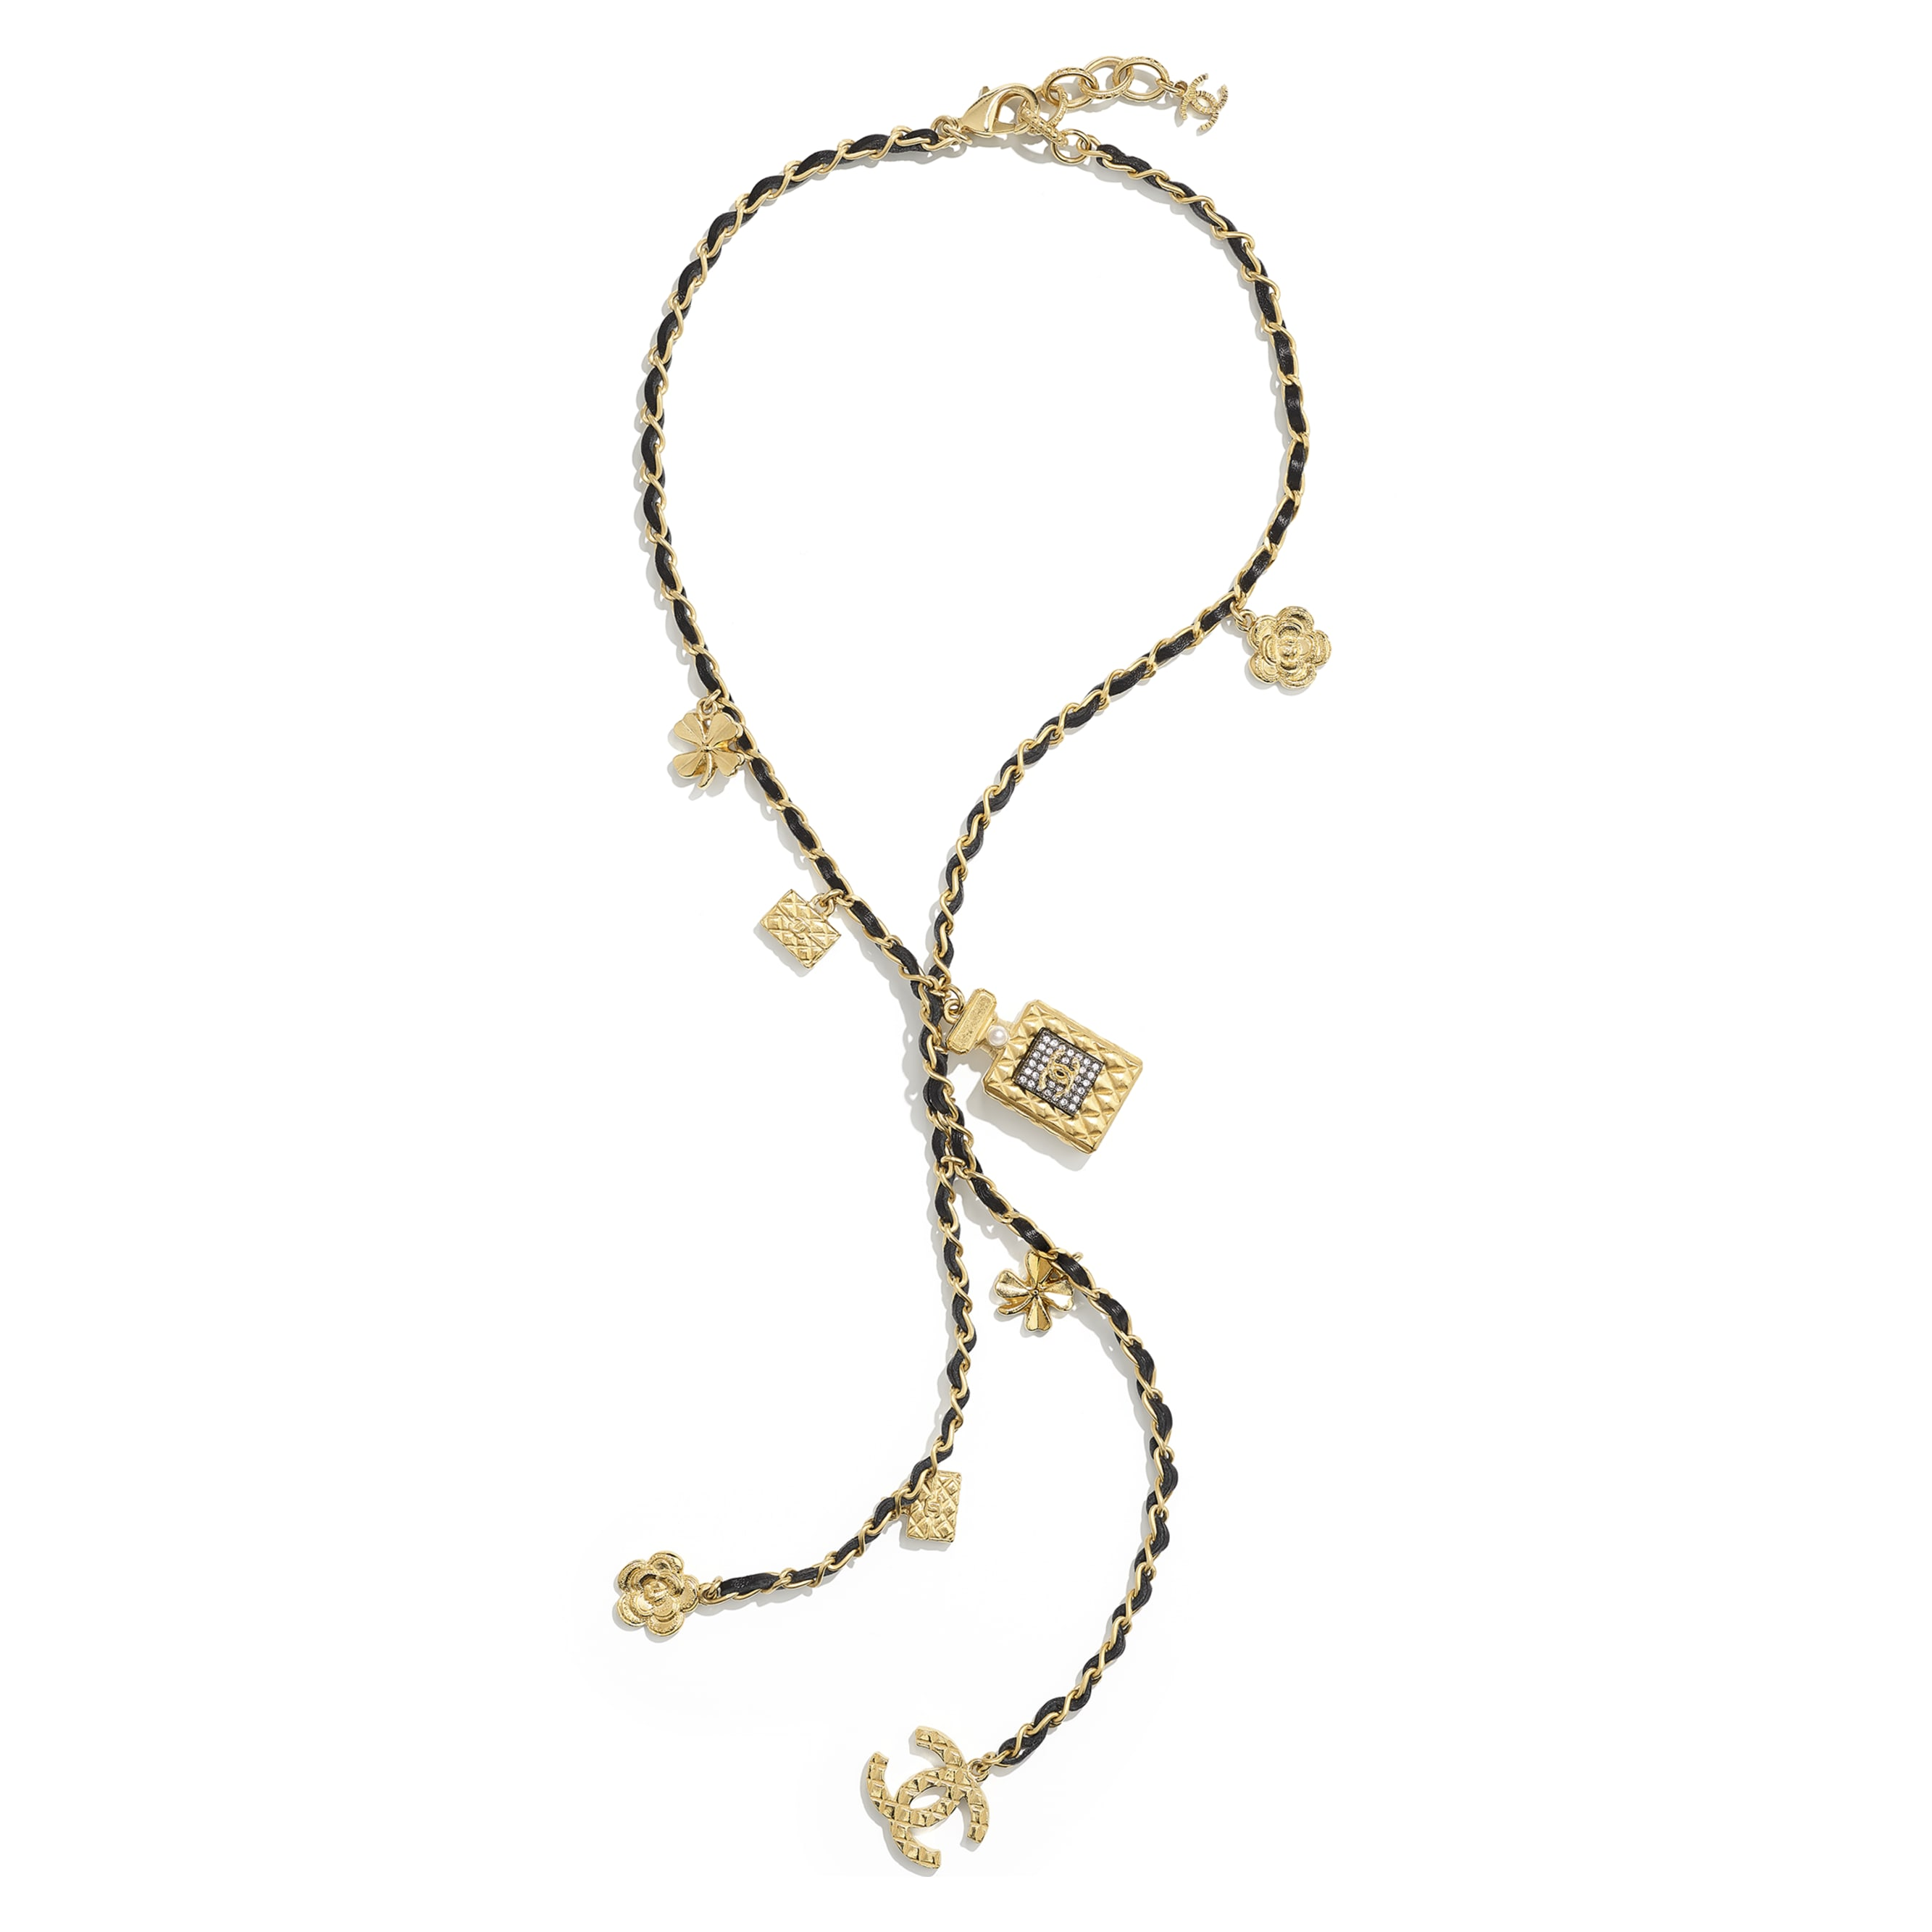 Necklace - Gold, Ruthenium, Pearly White, Black & Crystal - Metal, glass pearls, calfskin & diamanté - CHANEL - Alternative view - see standard sized version